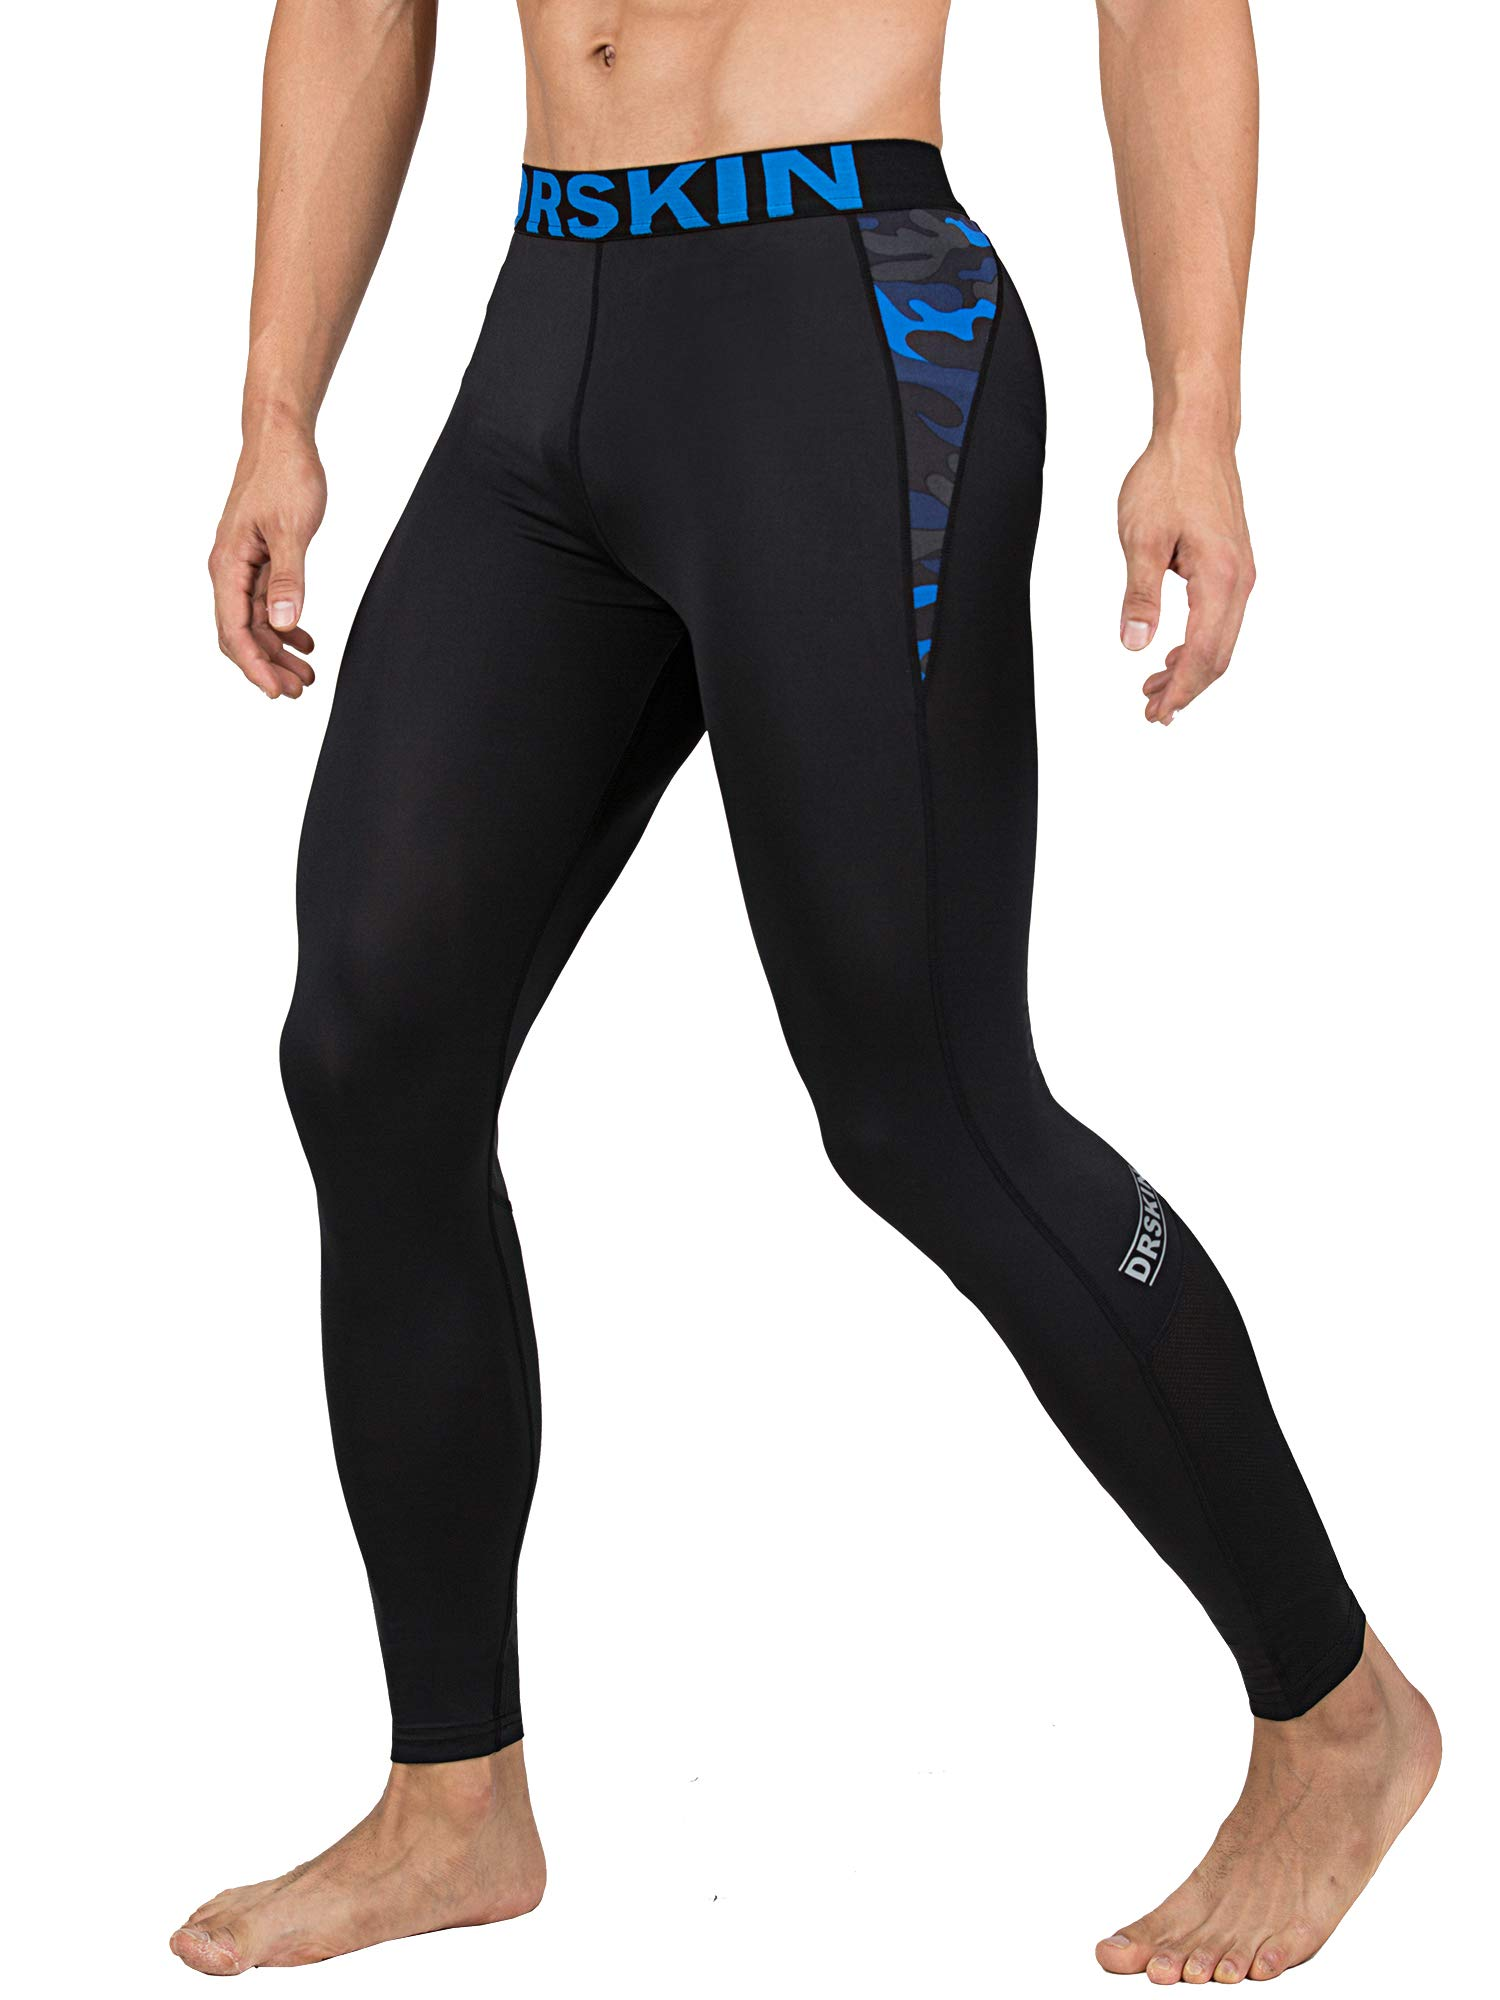 DRSKIN 1~3 Pack Men's Compression Dry Cool Sports Tights Pants Baselayer Running Leggings Yoga (Packs of 1, 2, or 3 Deals) (Came B-MBU07, S)